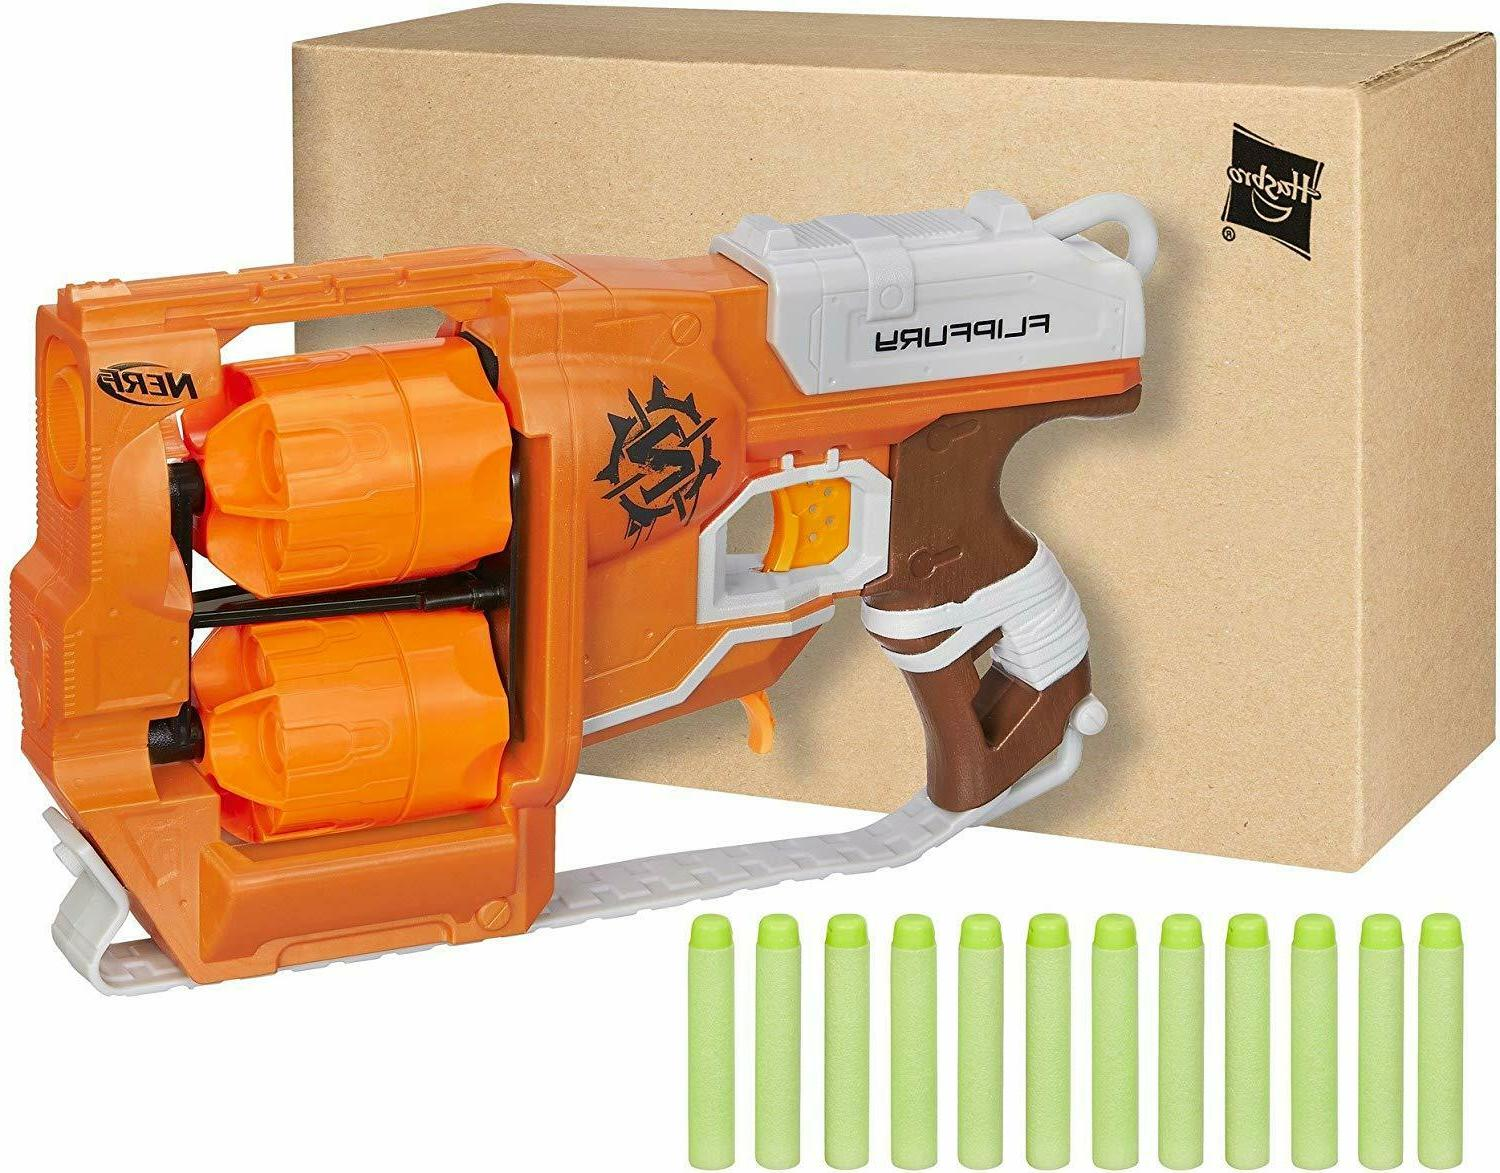 Nerf Fury with Darts Toys for Gift